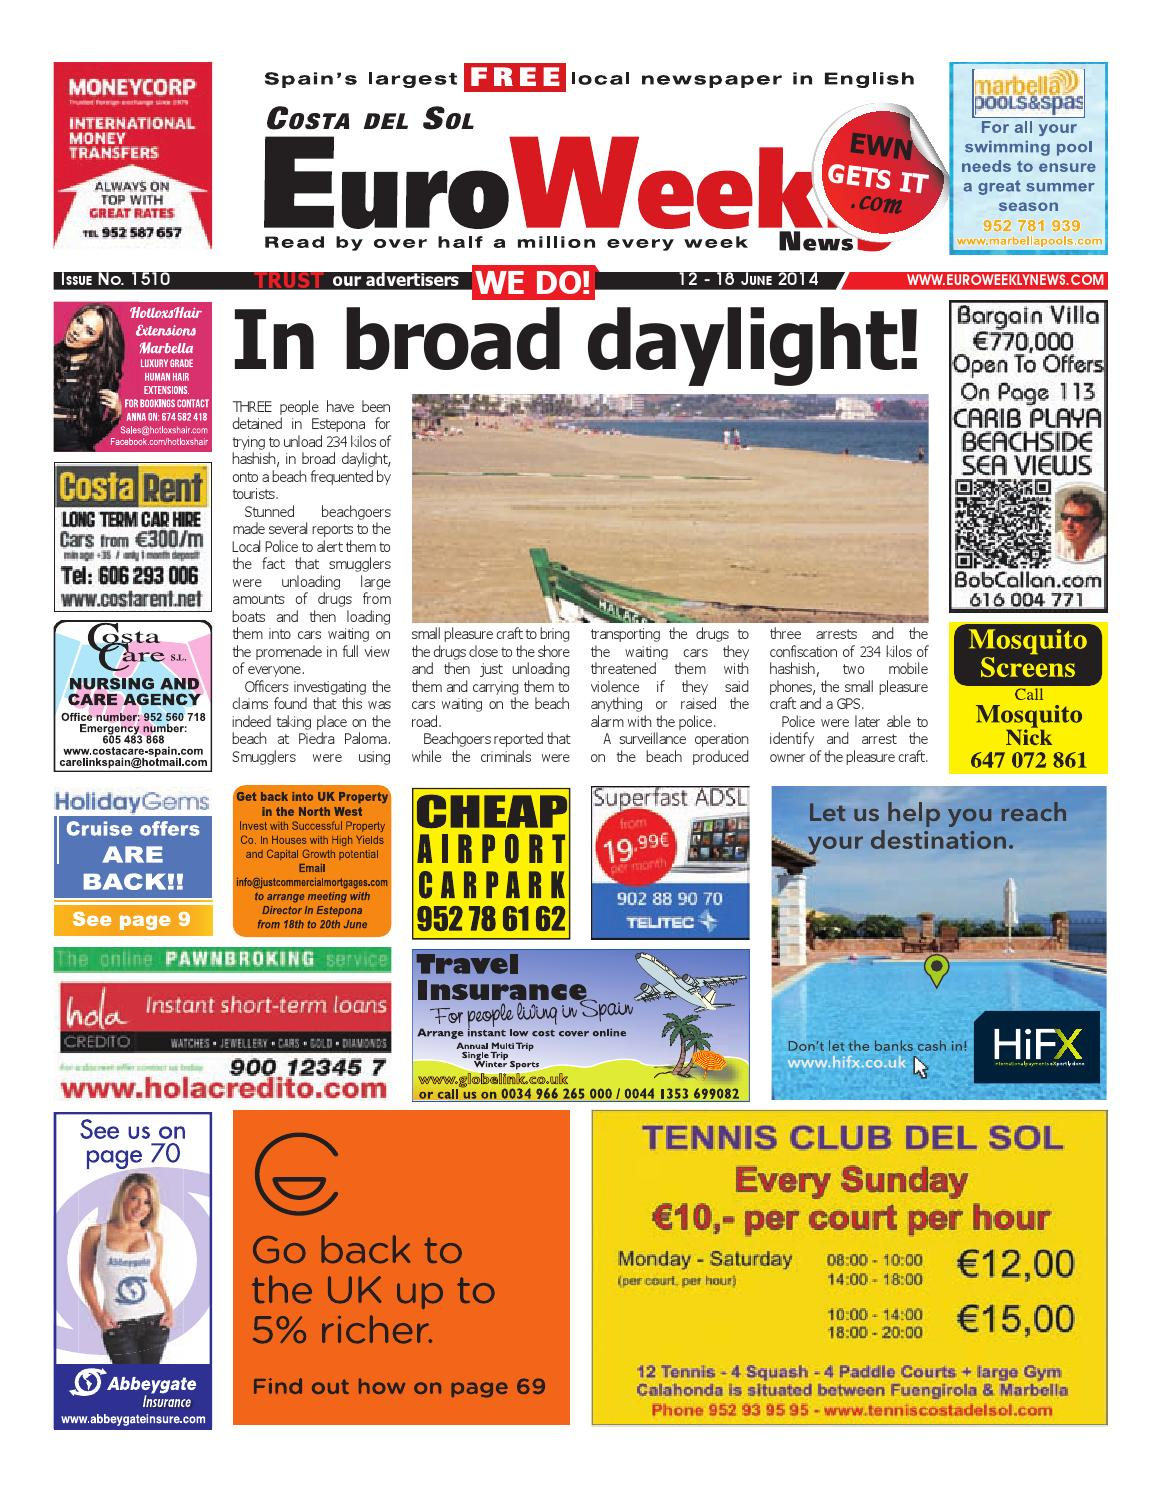 Euro weekly news costa del sol 12 18 june 2014 issue 1510 by euro weekly news costa del sol 12 18 june 2014 issue 1510 by euro weekly news media sa issuu fandeluxe Images